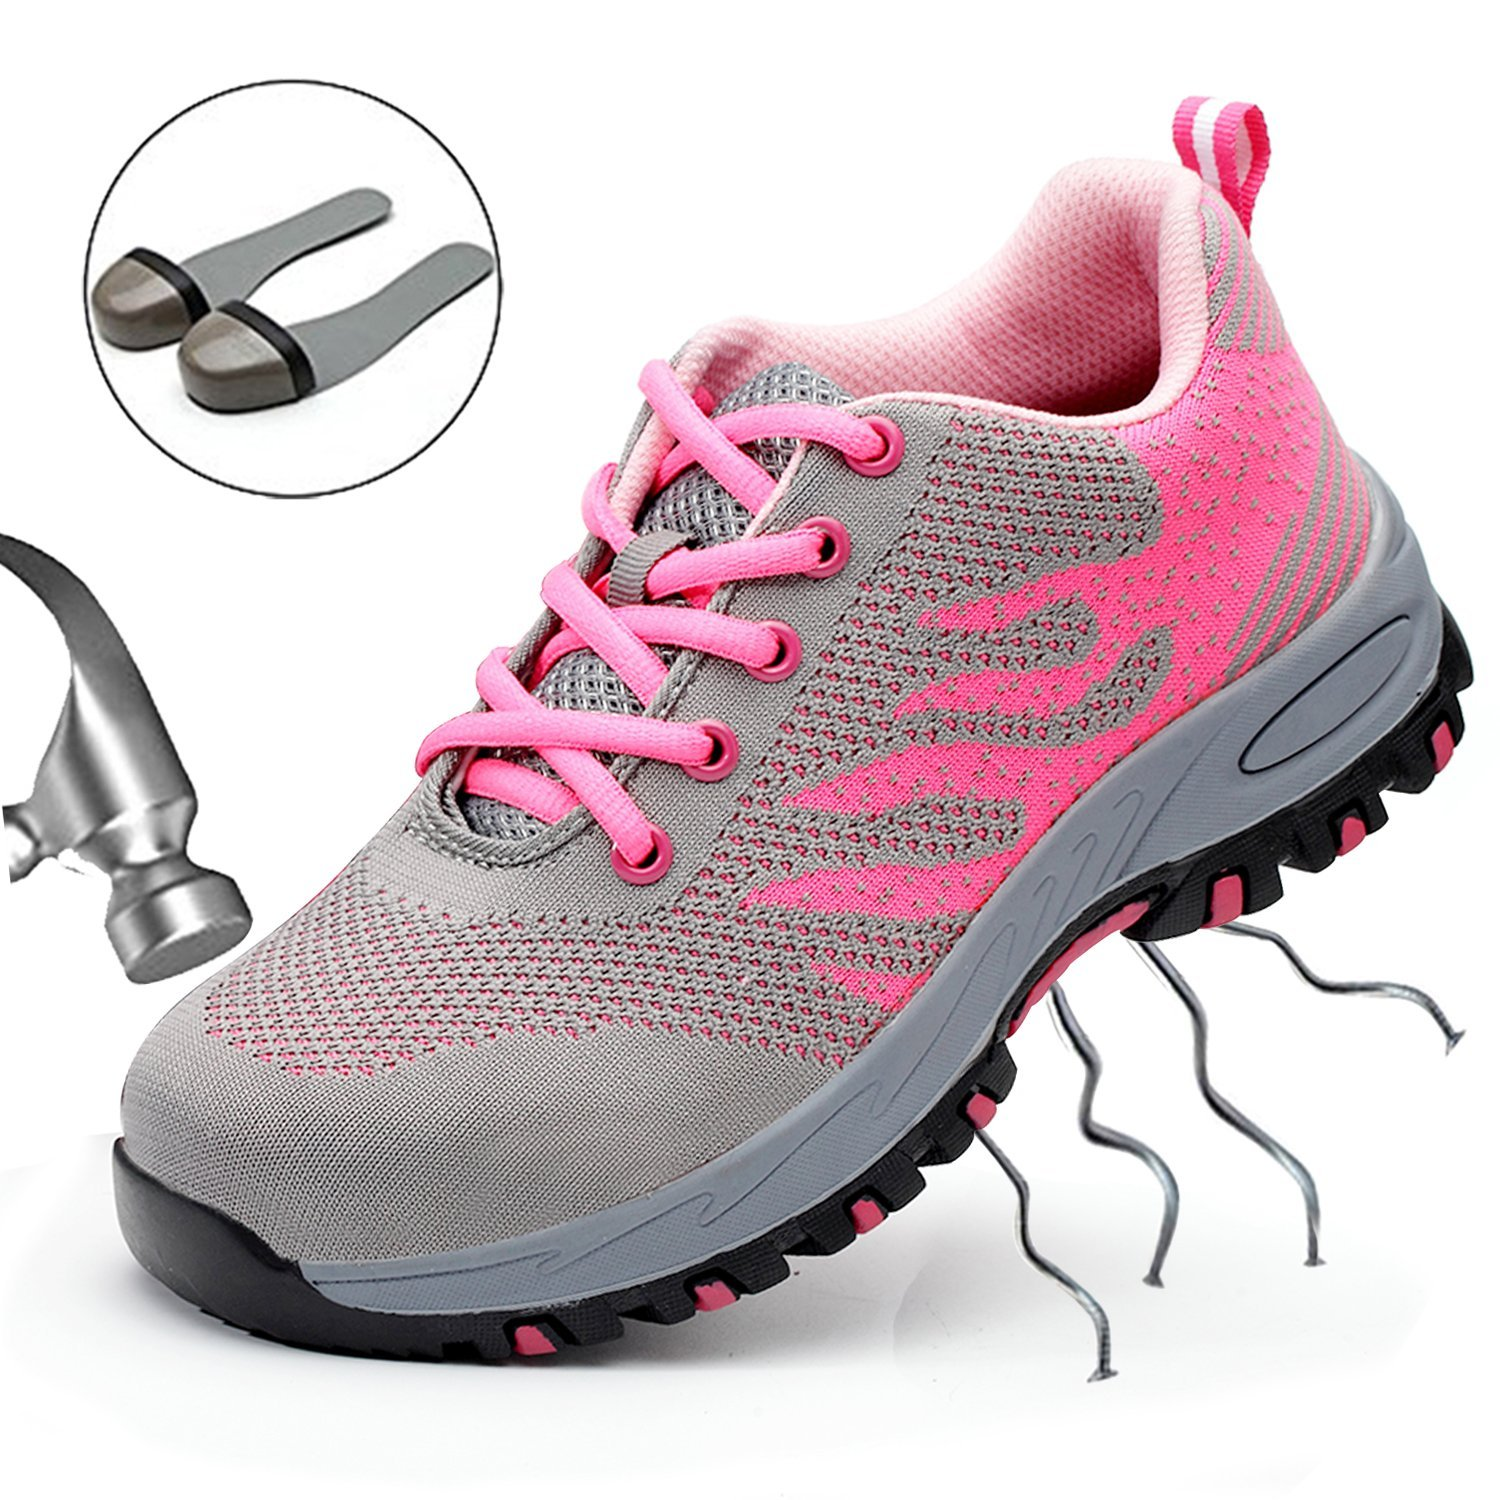 SUADEEX Steel Toe Shoes Men, Work Shoes, Safety Shoes, Steel Toe Boots for Men, Pink-40